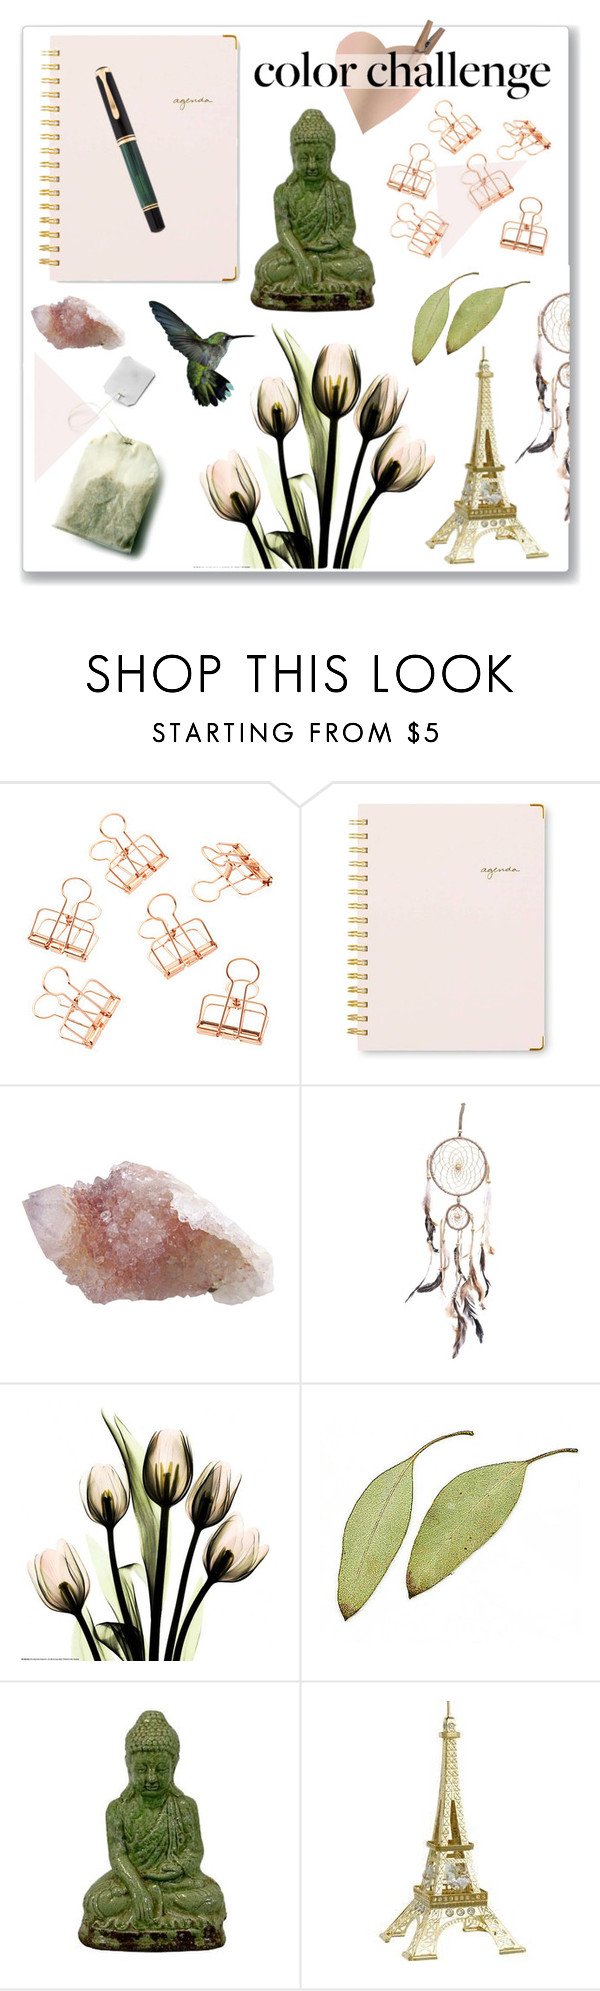 """Color Challenge"" by hellodollface ❤ liked on Polyvore featuring interior, interiors, interior design, home, home decor, interior decorating, Sugar Paper, Urban Trends Collection, Swarovski and Pelikan"